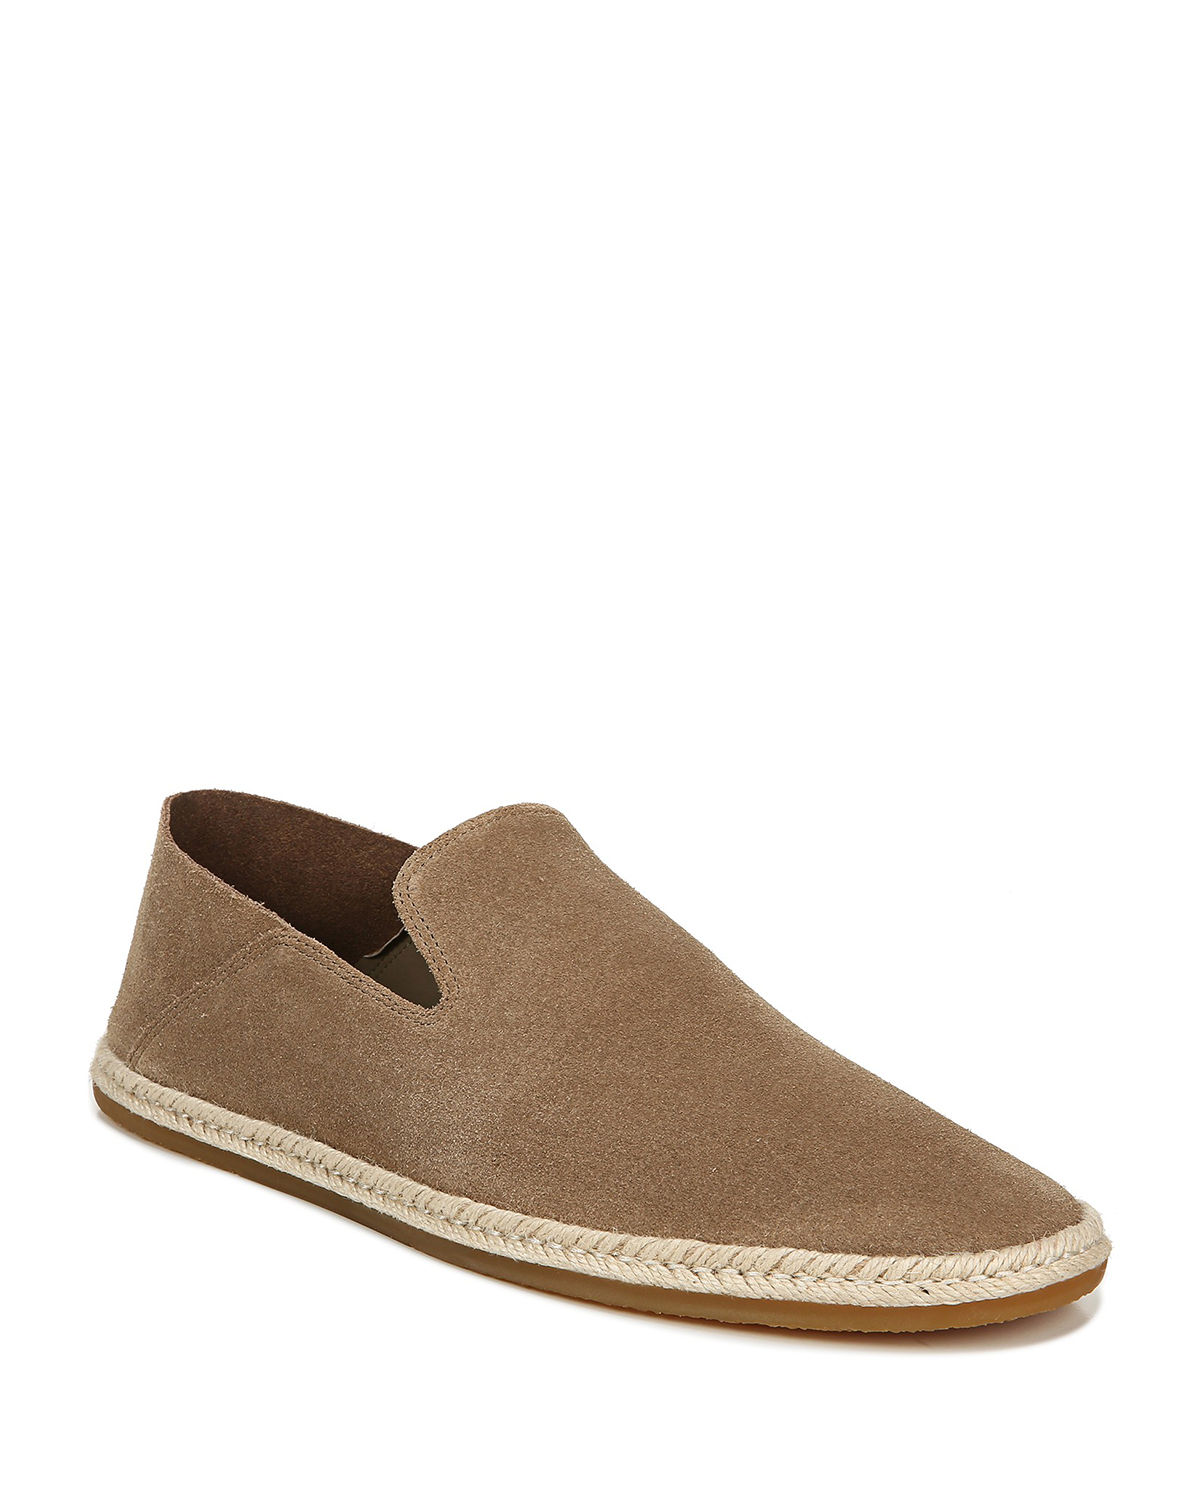 Vince MEN'S EASTON SUEDE ESPADRILLE SLIP-ON SNEAKERS